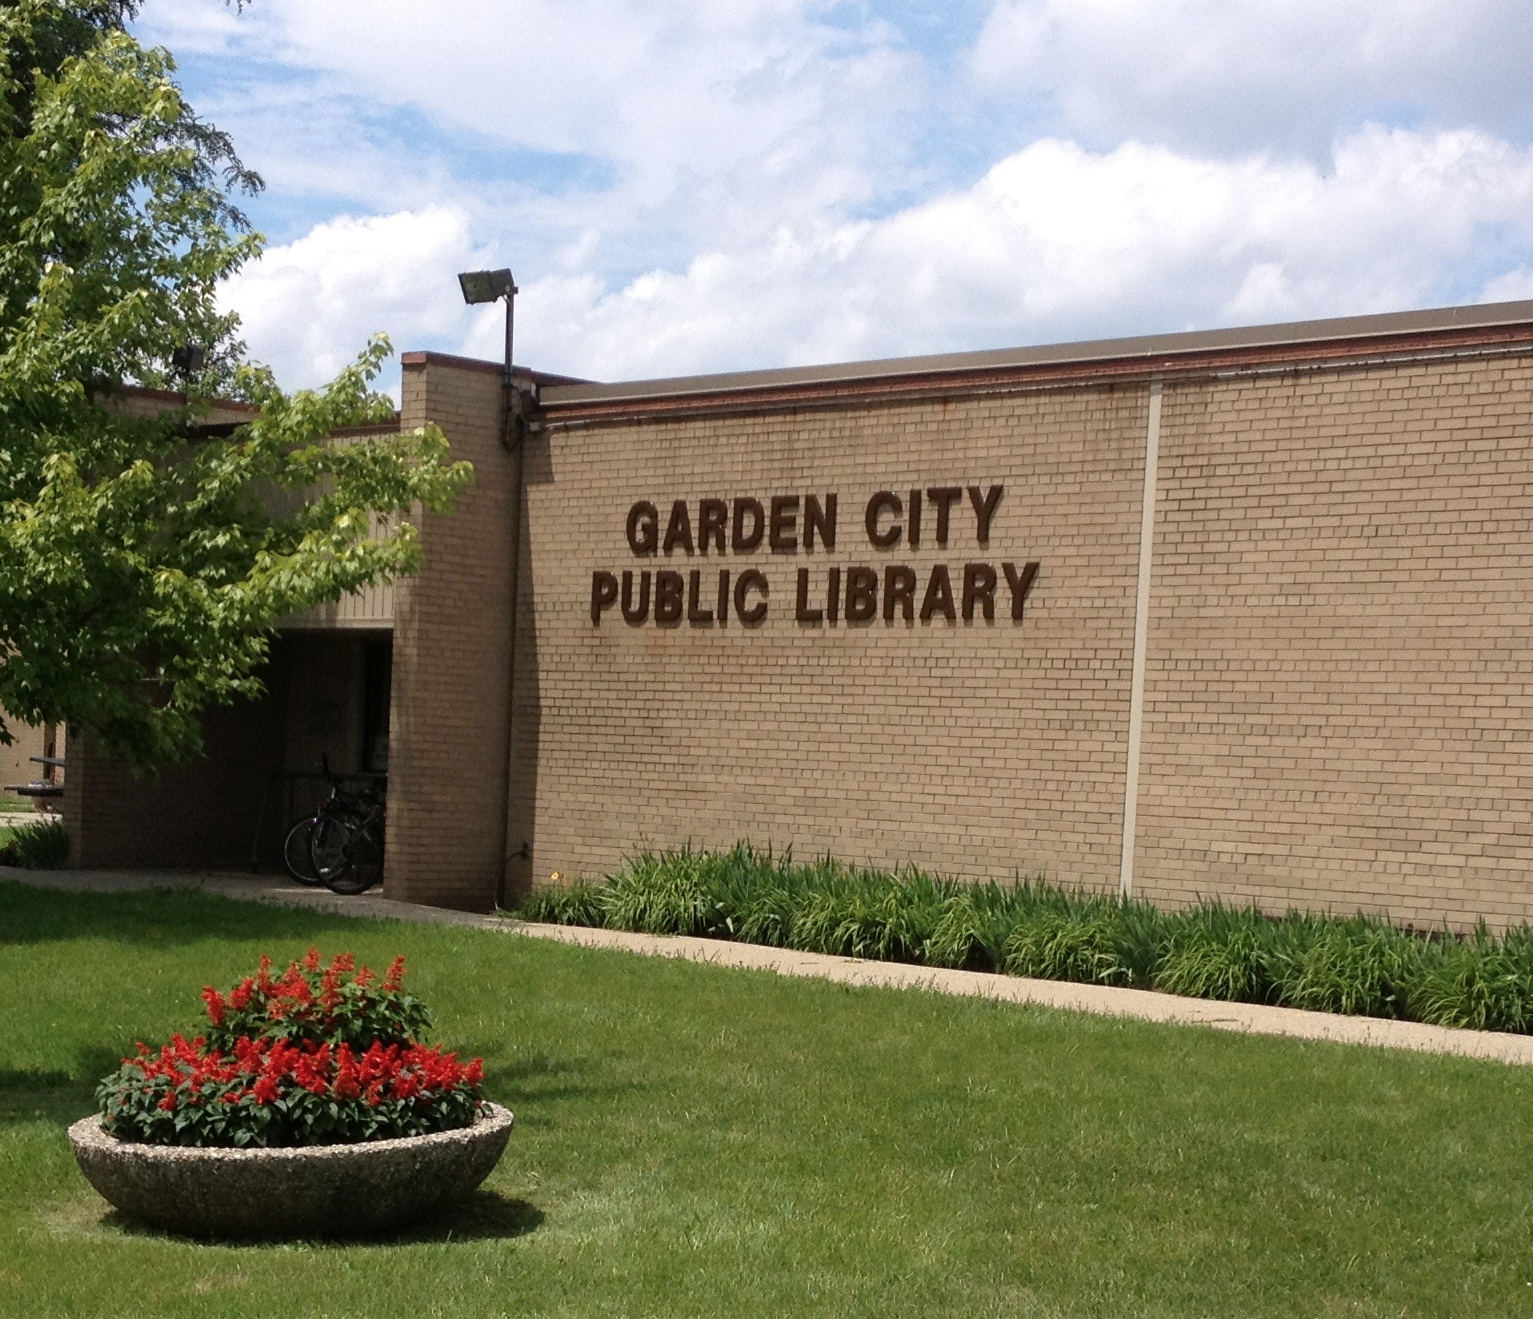 Welcome to the Garden City Public Library! - Garden City Public Library